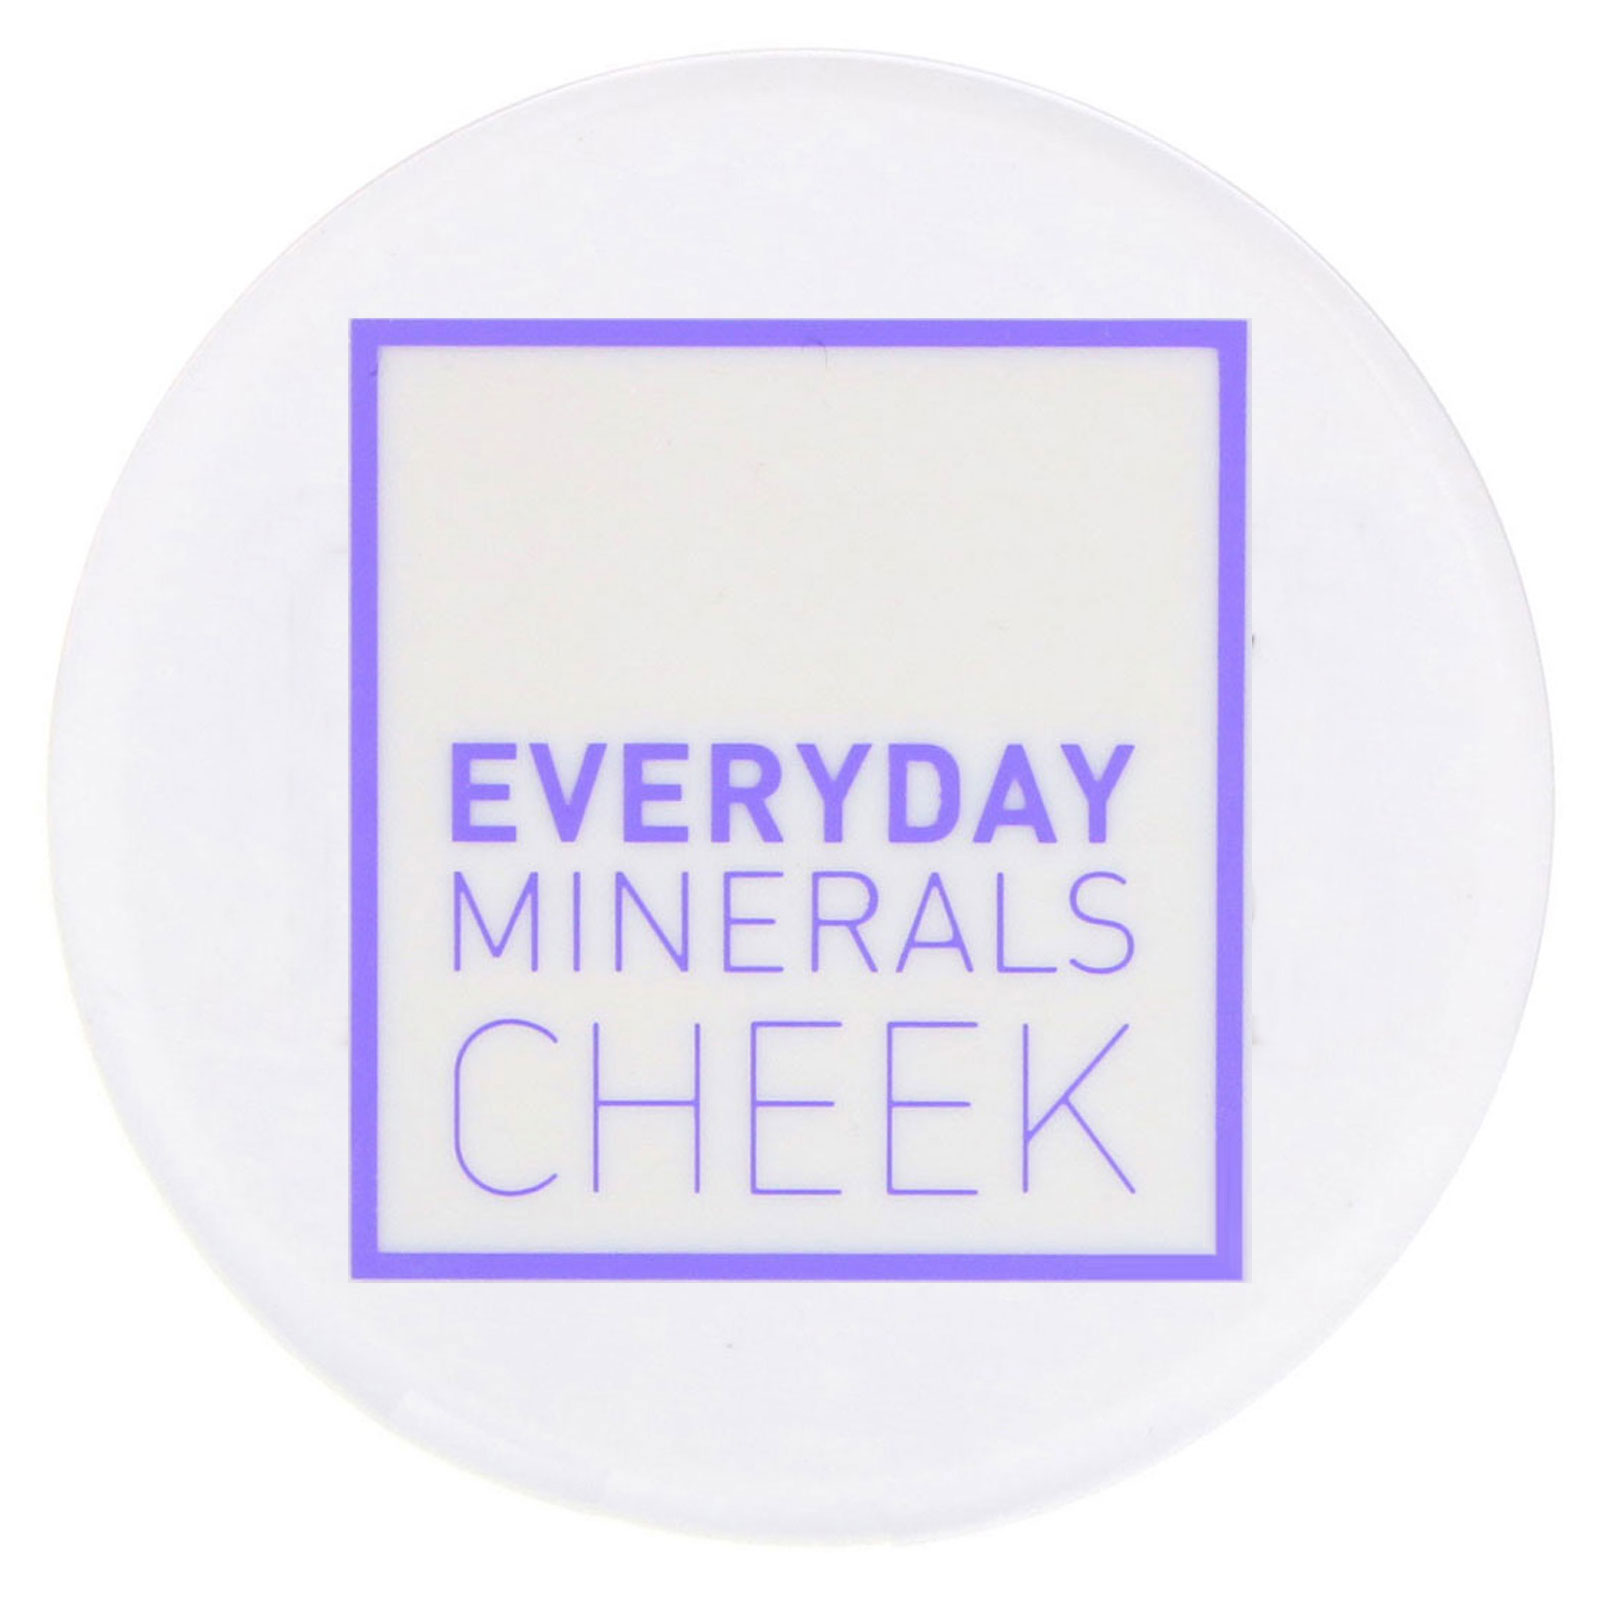 Everydau minerals CHEEK